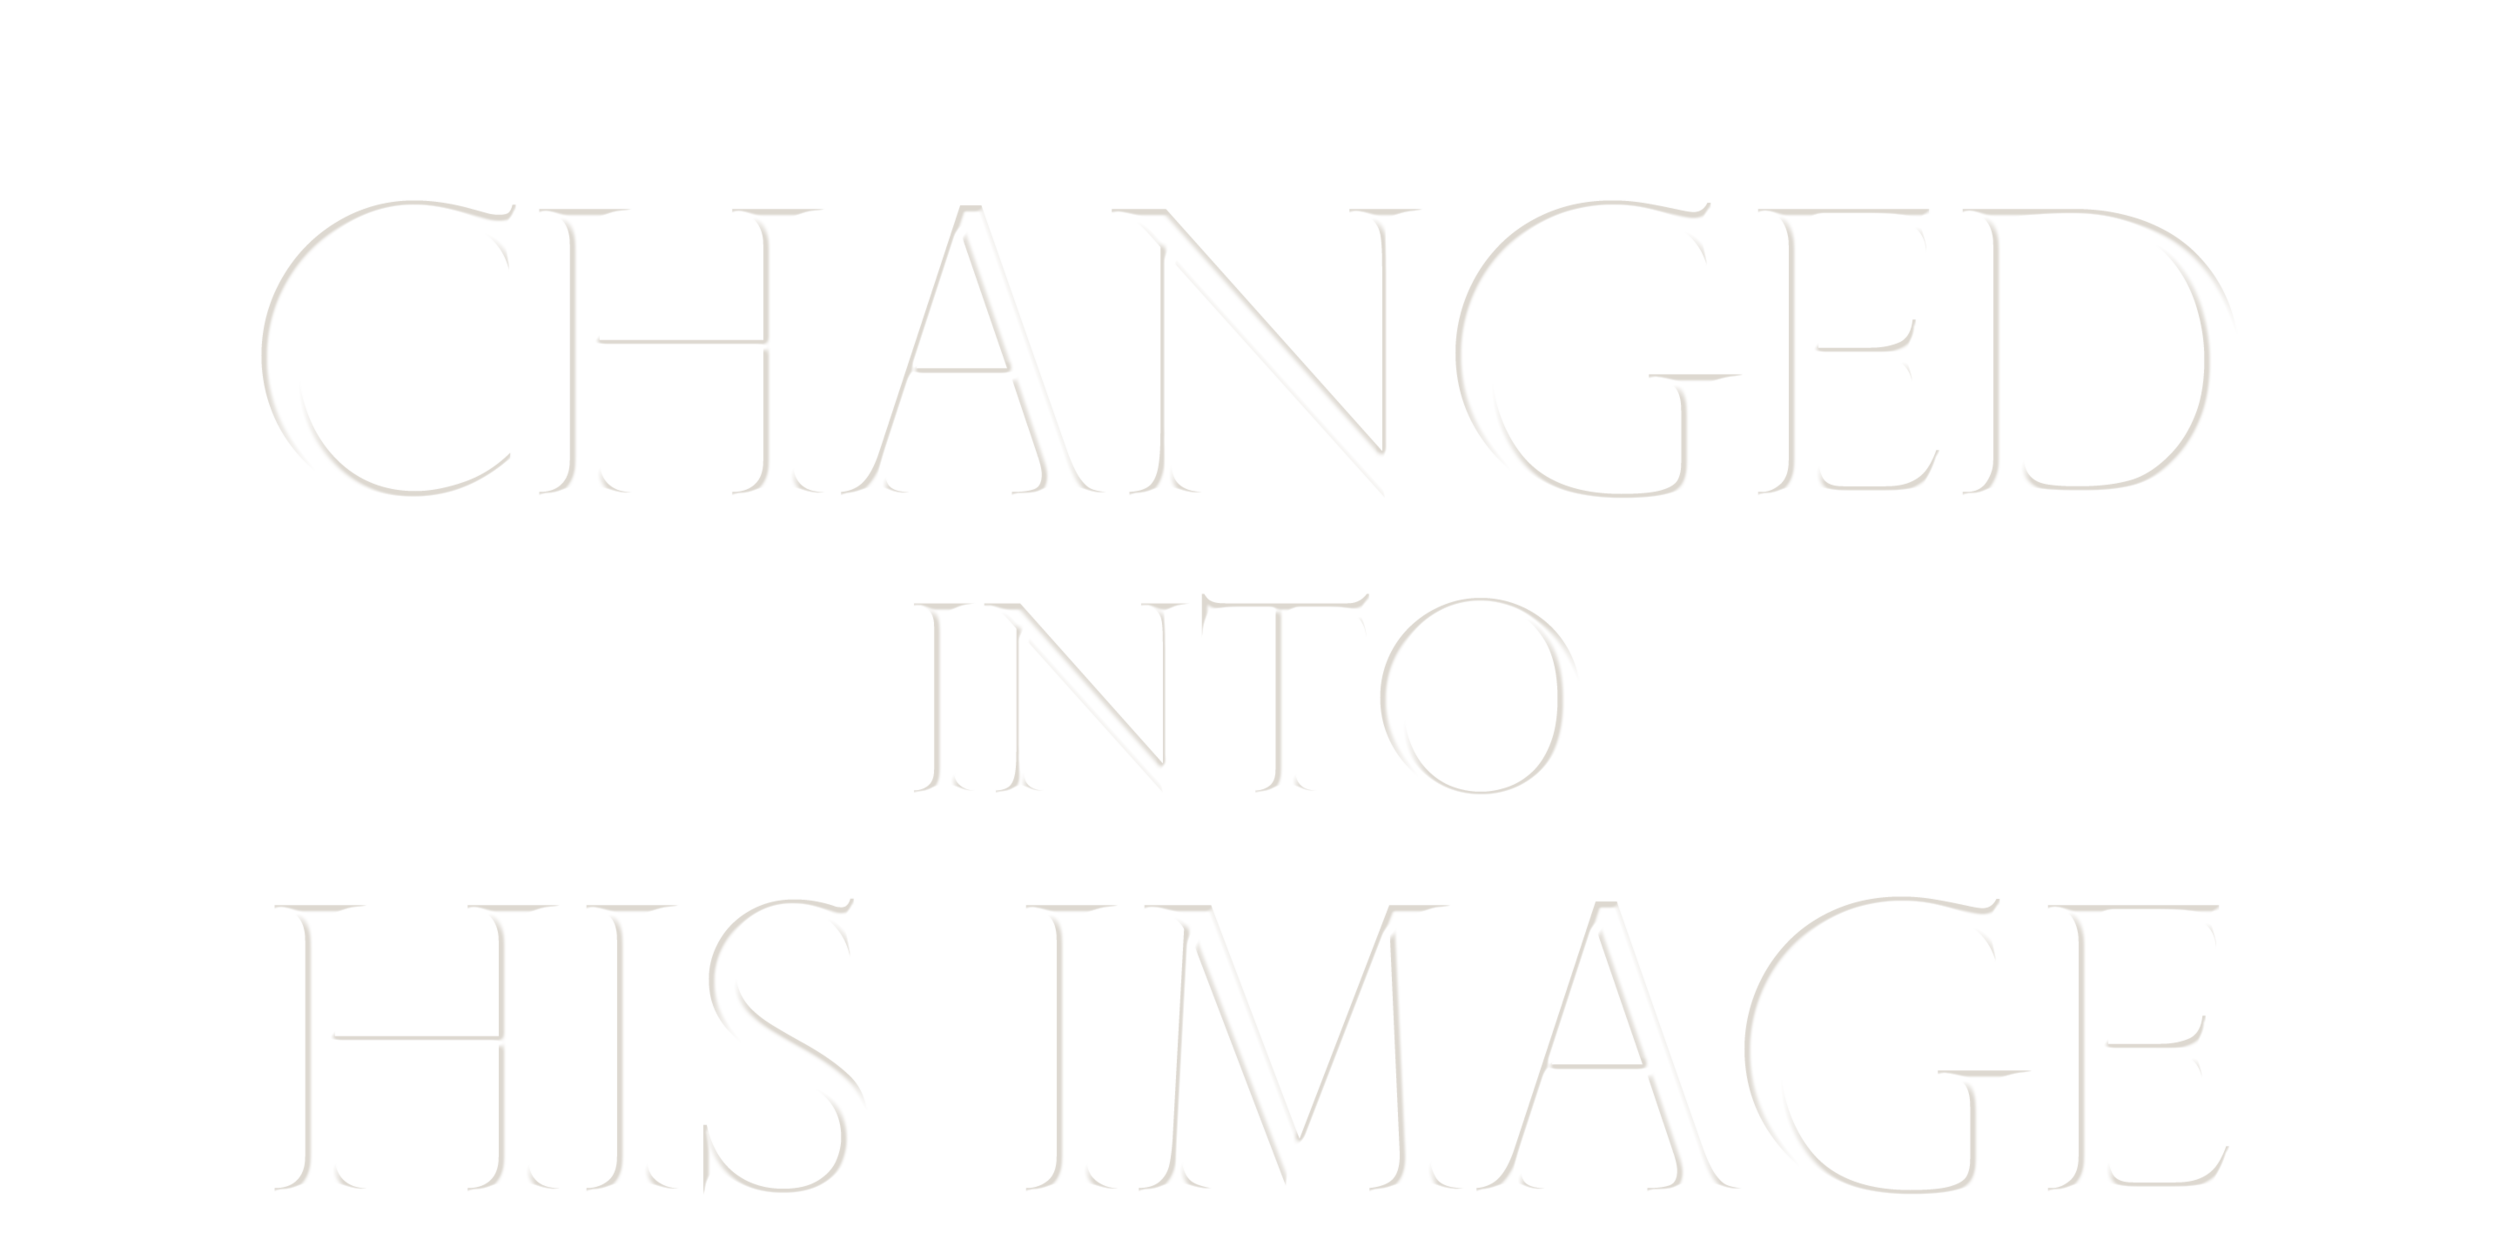 title-changedintohis-image.png